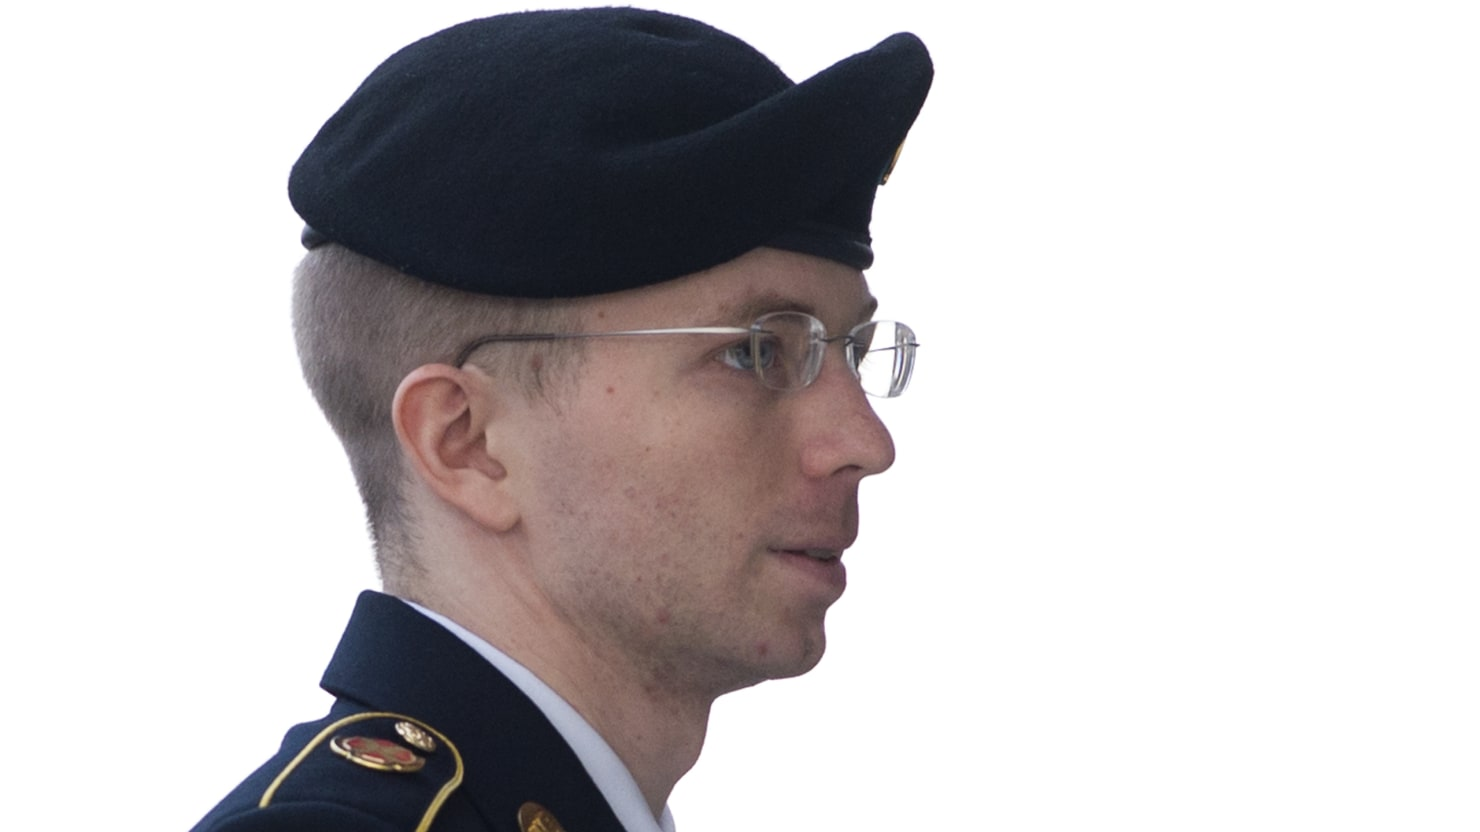 Bradley Manning: 'I Will Recover From This…This Is Just a Stage in My Life'